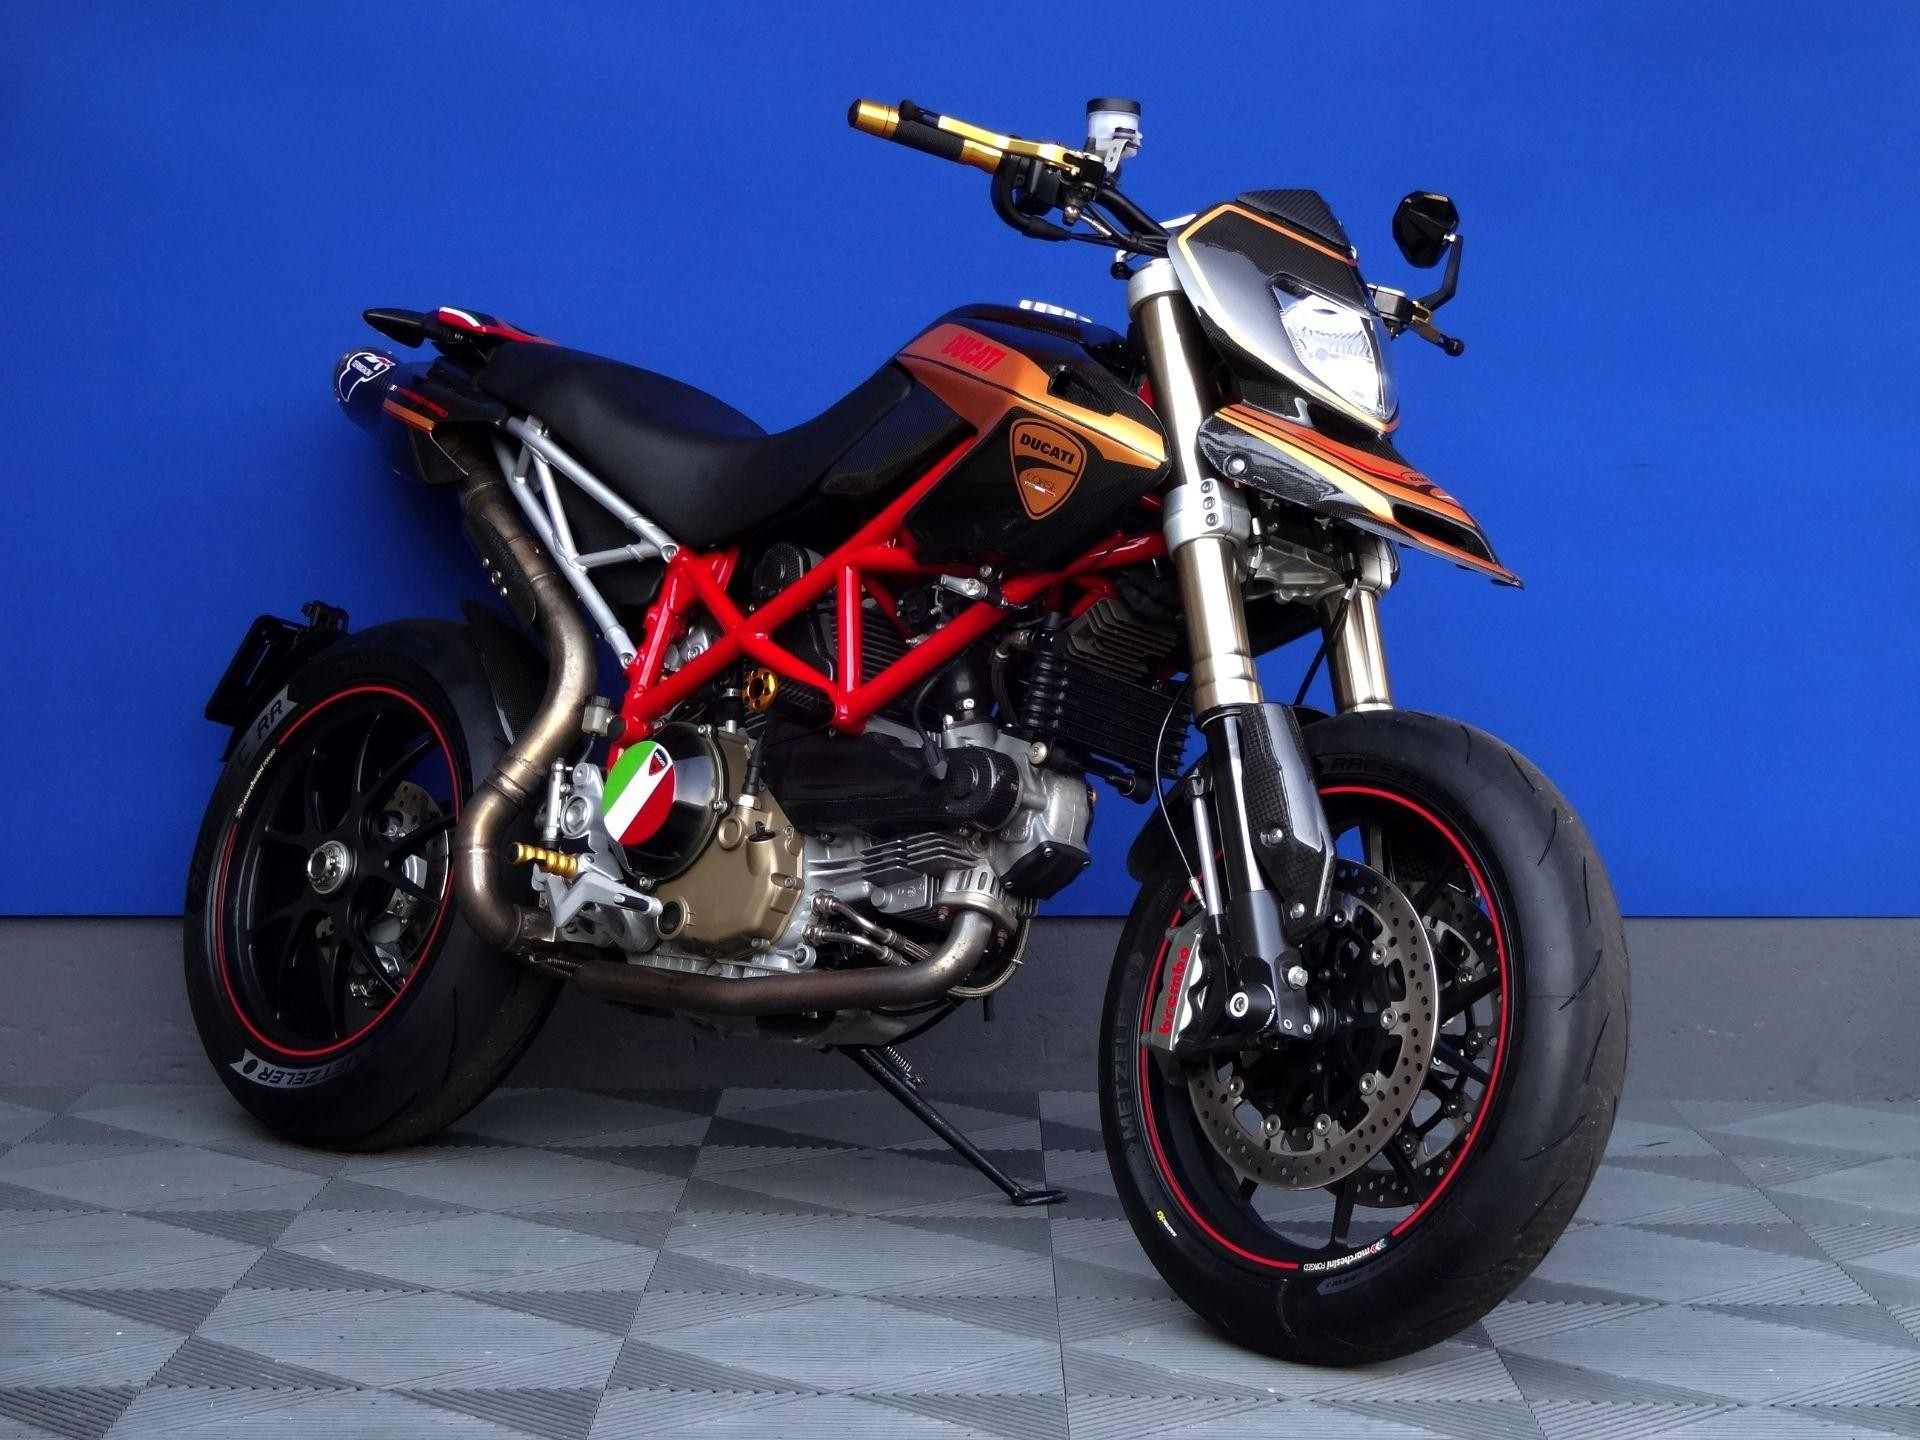 ducati 1100 hypermotard s termignoni vogel motorbikes sch pfheim occasion. Black Bedroom Furniture Sets. Home Design Ideas